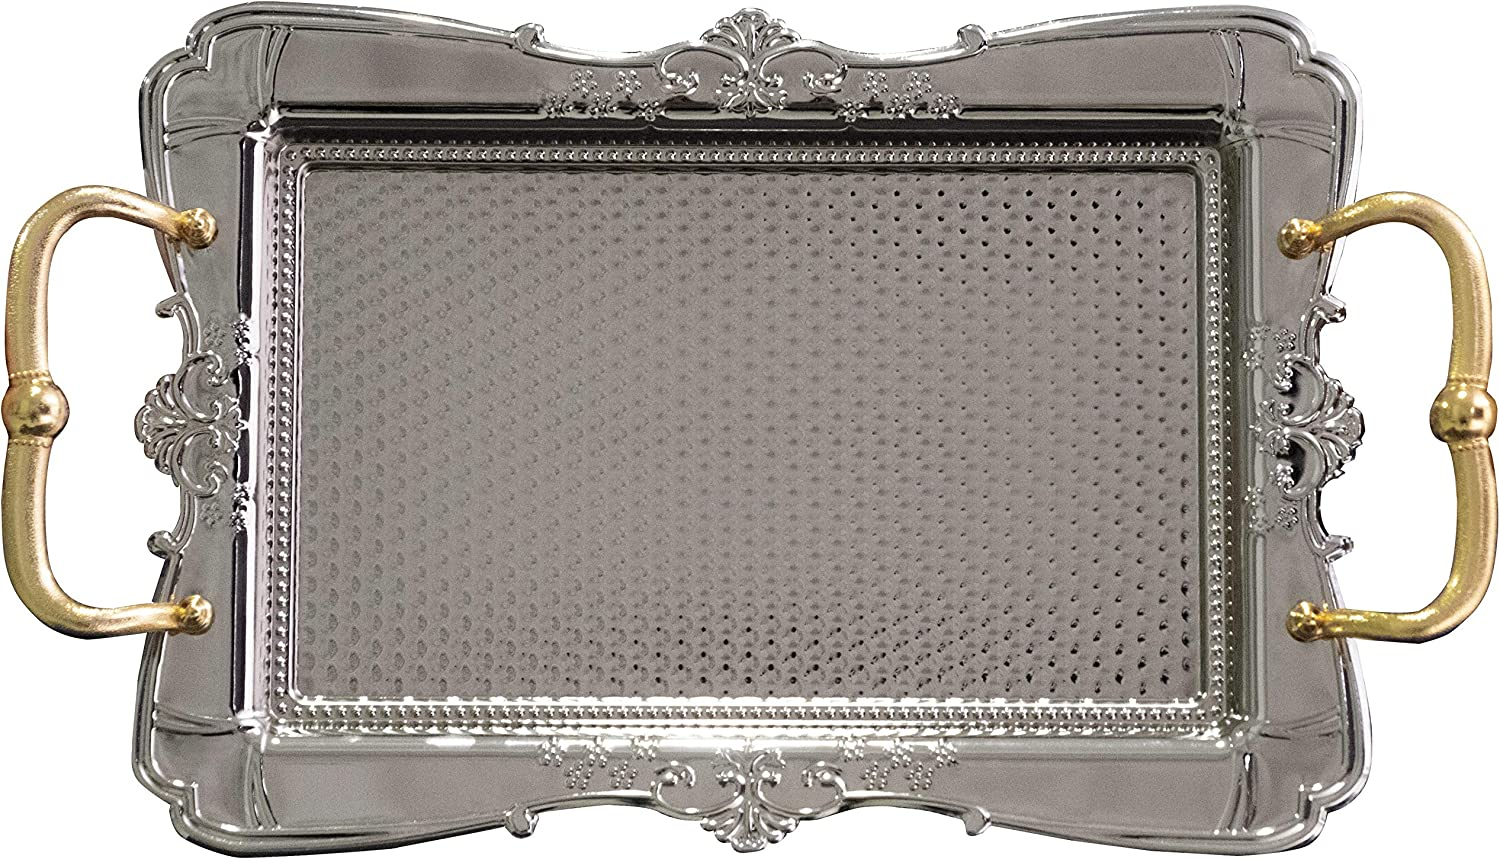 BAYKUL Turkish Ottoman Coffee Tea Beverage Silver Vintage Serving Square Tray, Luxury Metal Chrom Moroccan Decorative Breakfast Dinner Table, Ottoman Trays Extra Large (Silver)